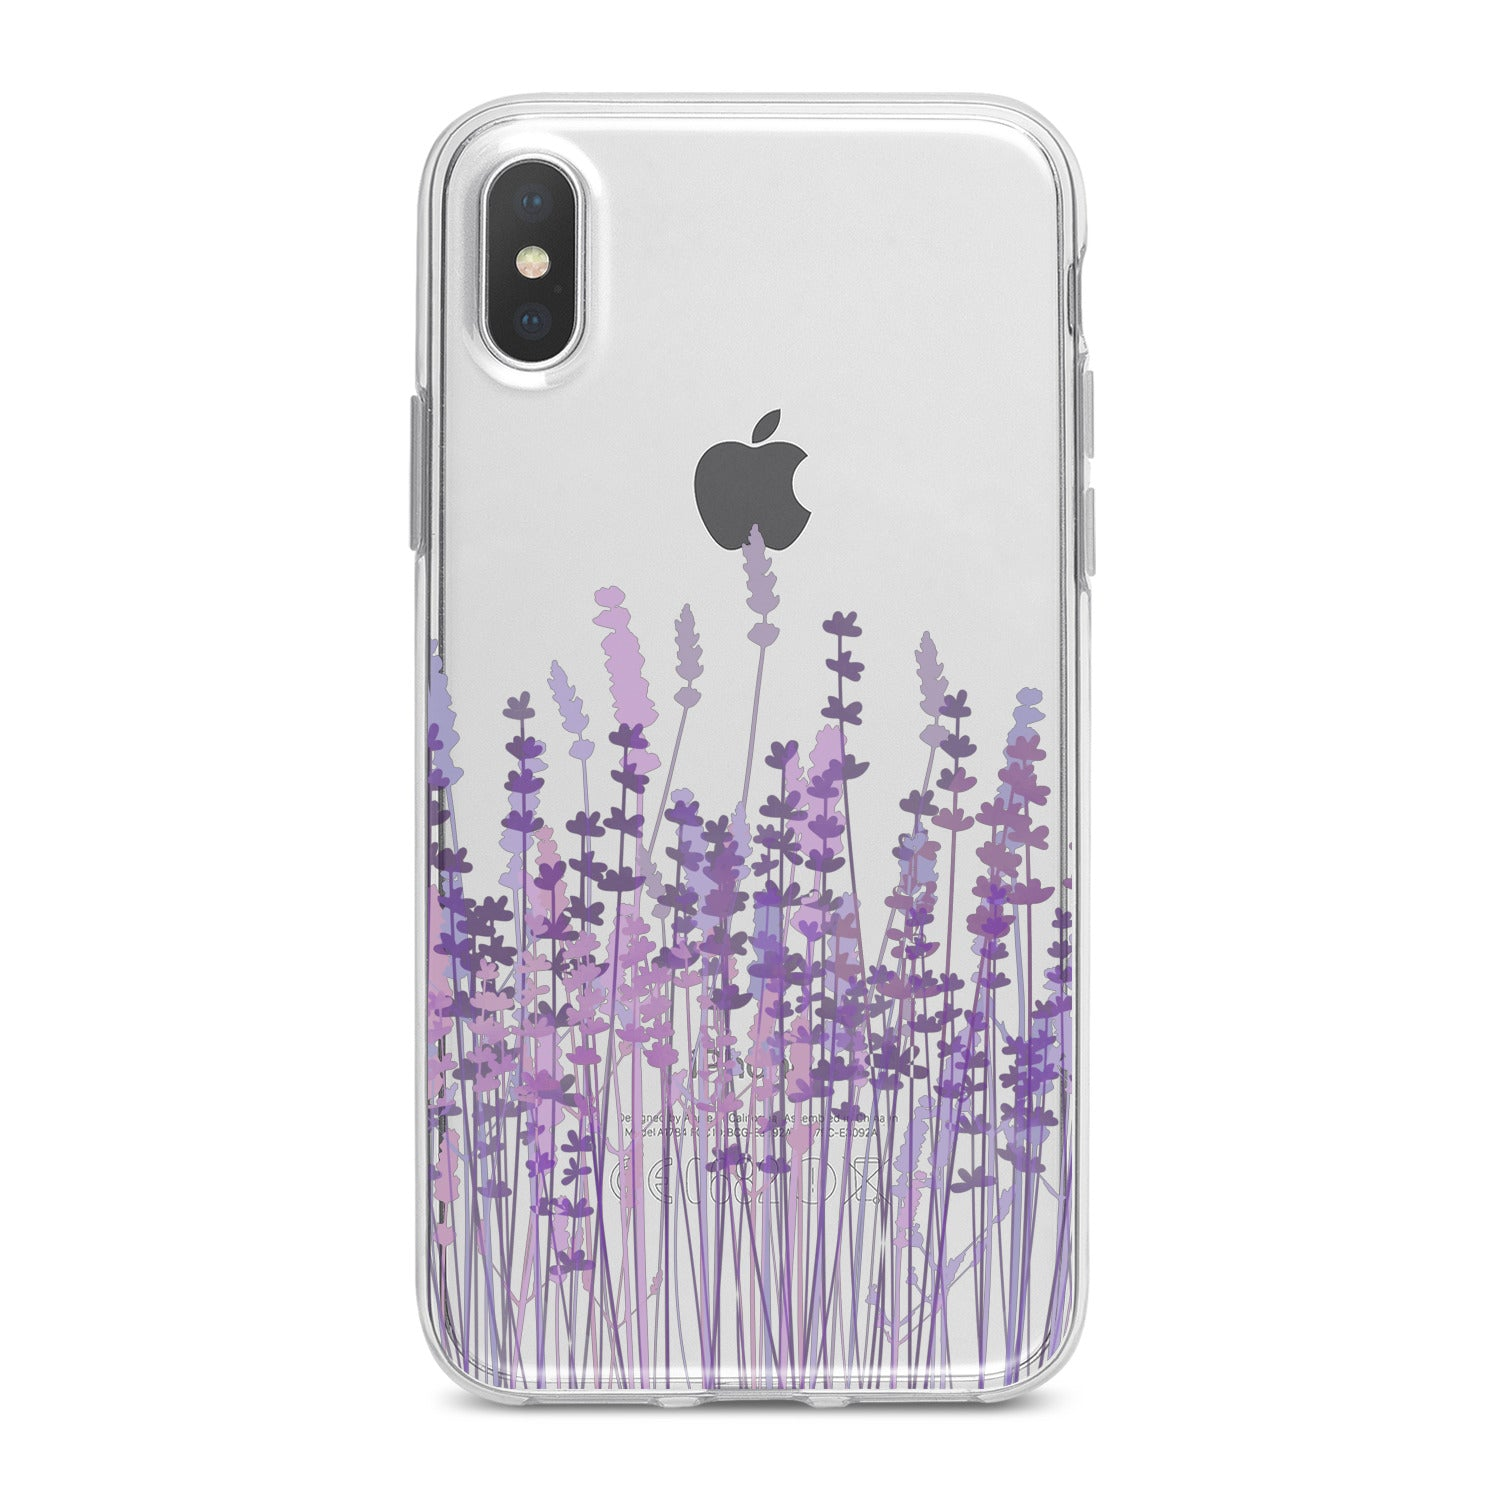 Lex Altern Cute Lavender Blossom Phone Case for your iPhone & Android phone.